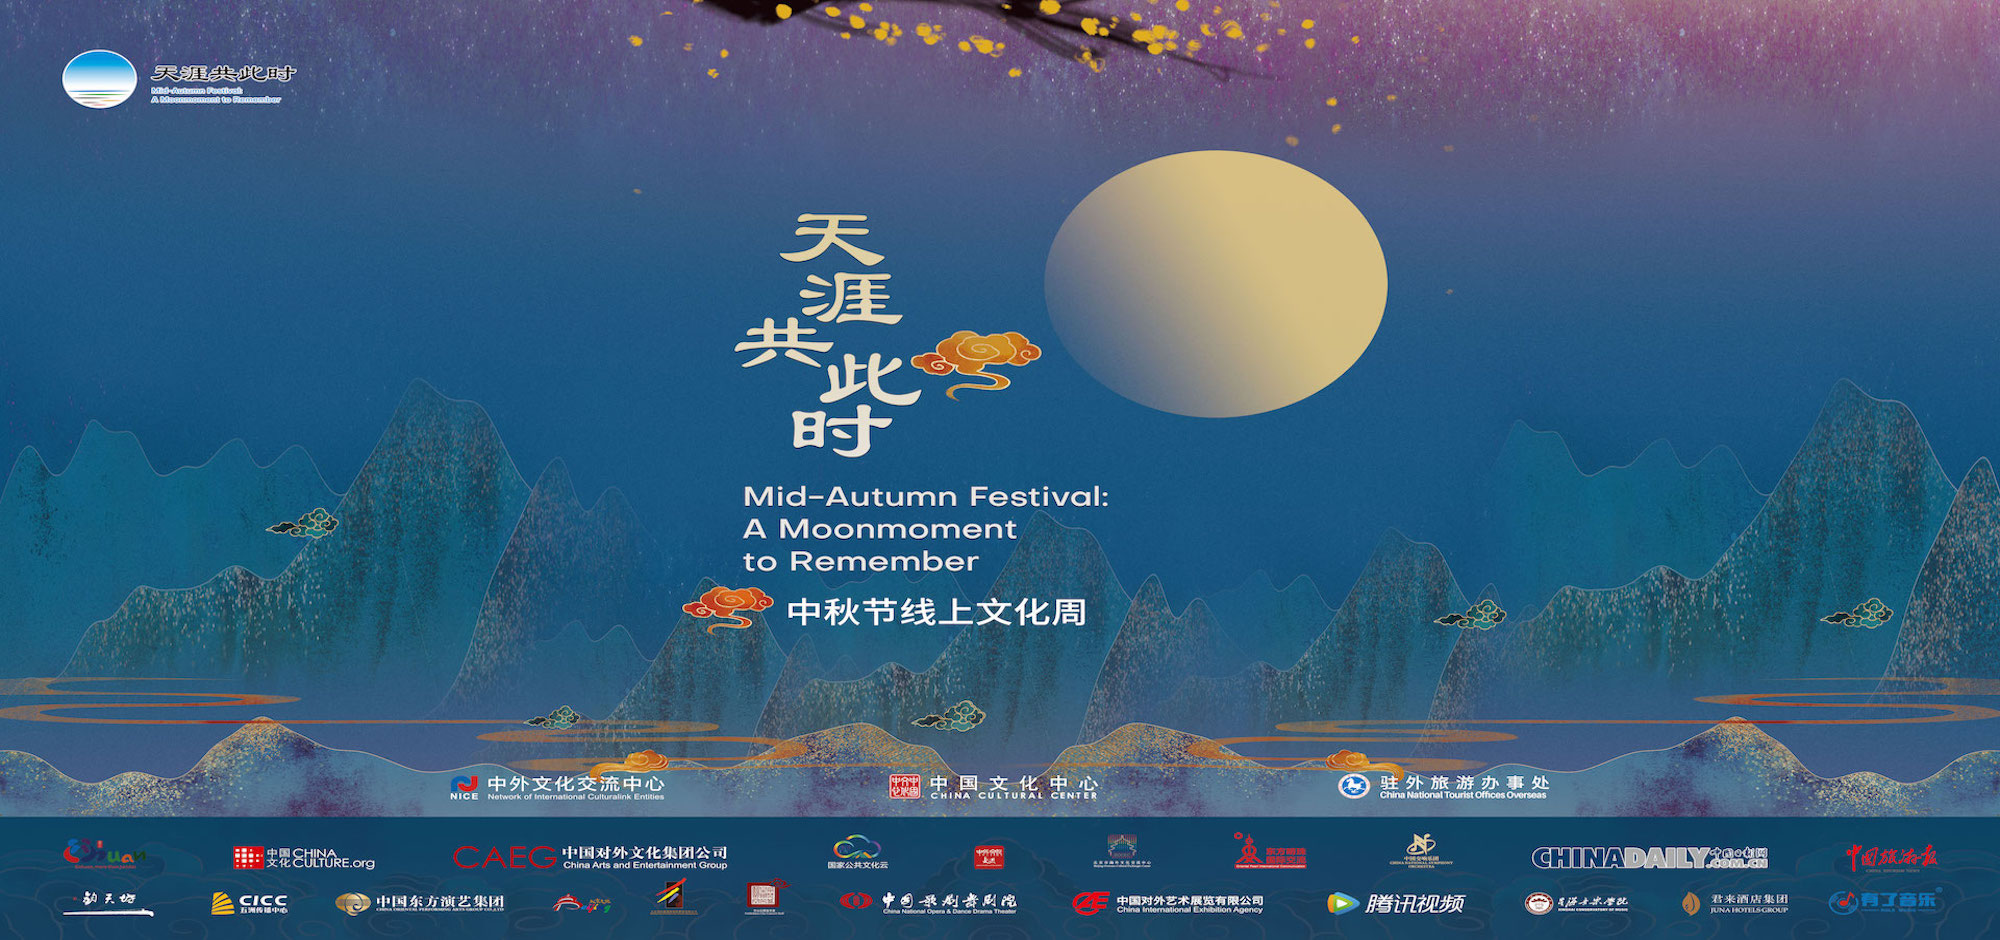 Mid-Autumn Festival: A Moonmoment to Remember